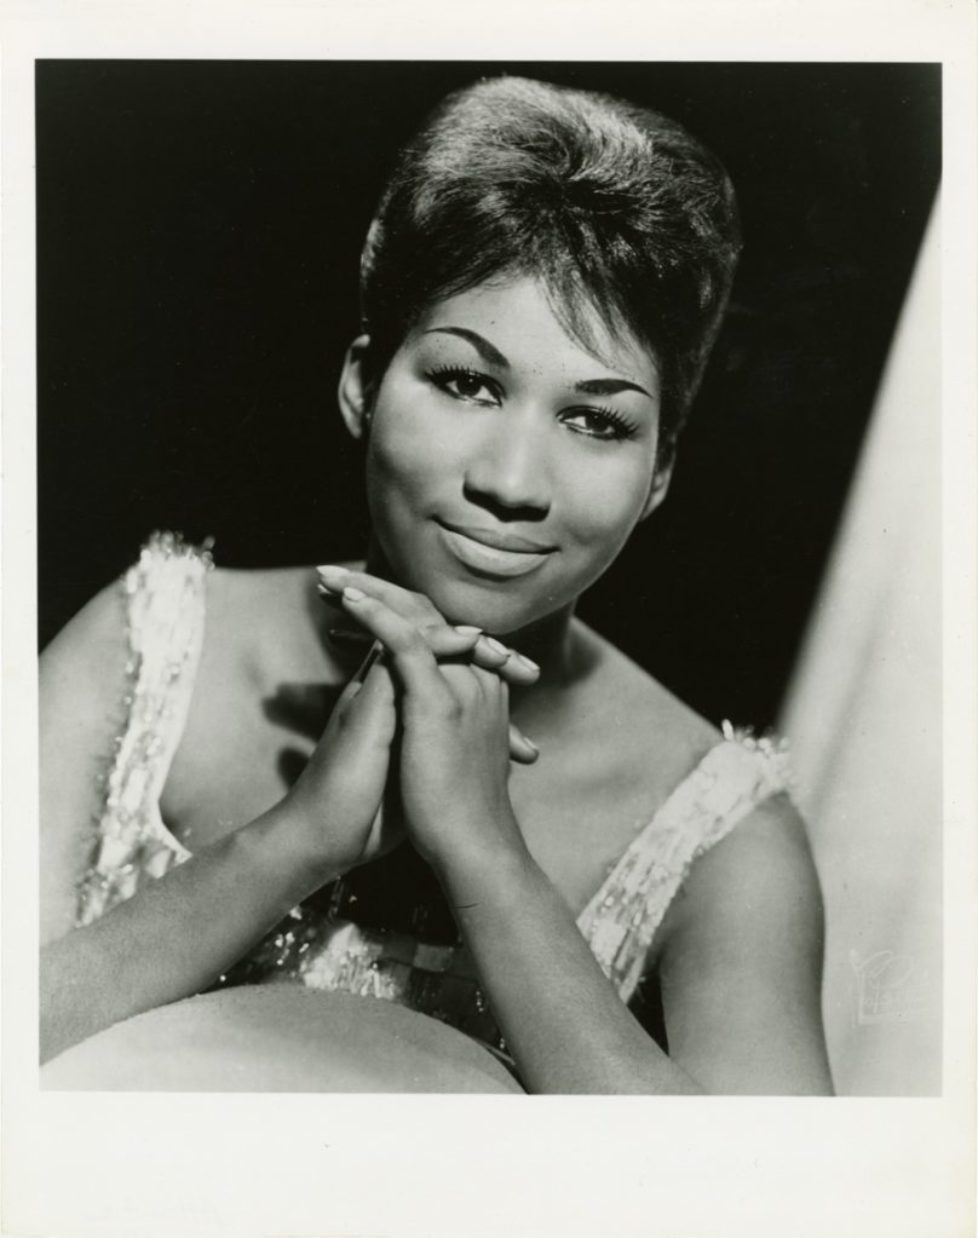 Aretha-Franklin-Press-Photo-1-1967-Photocredit-Atlantic-Publicity-px900